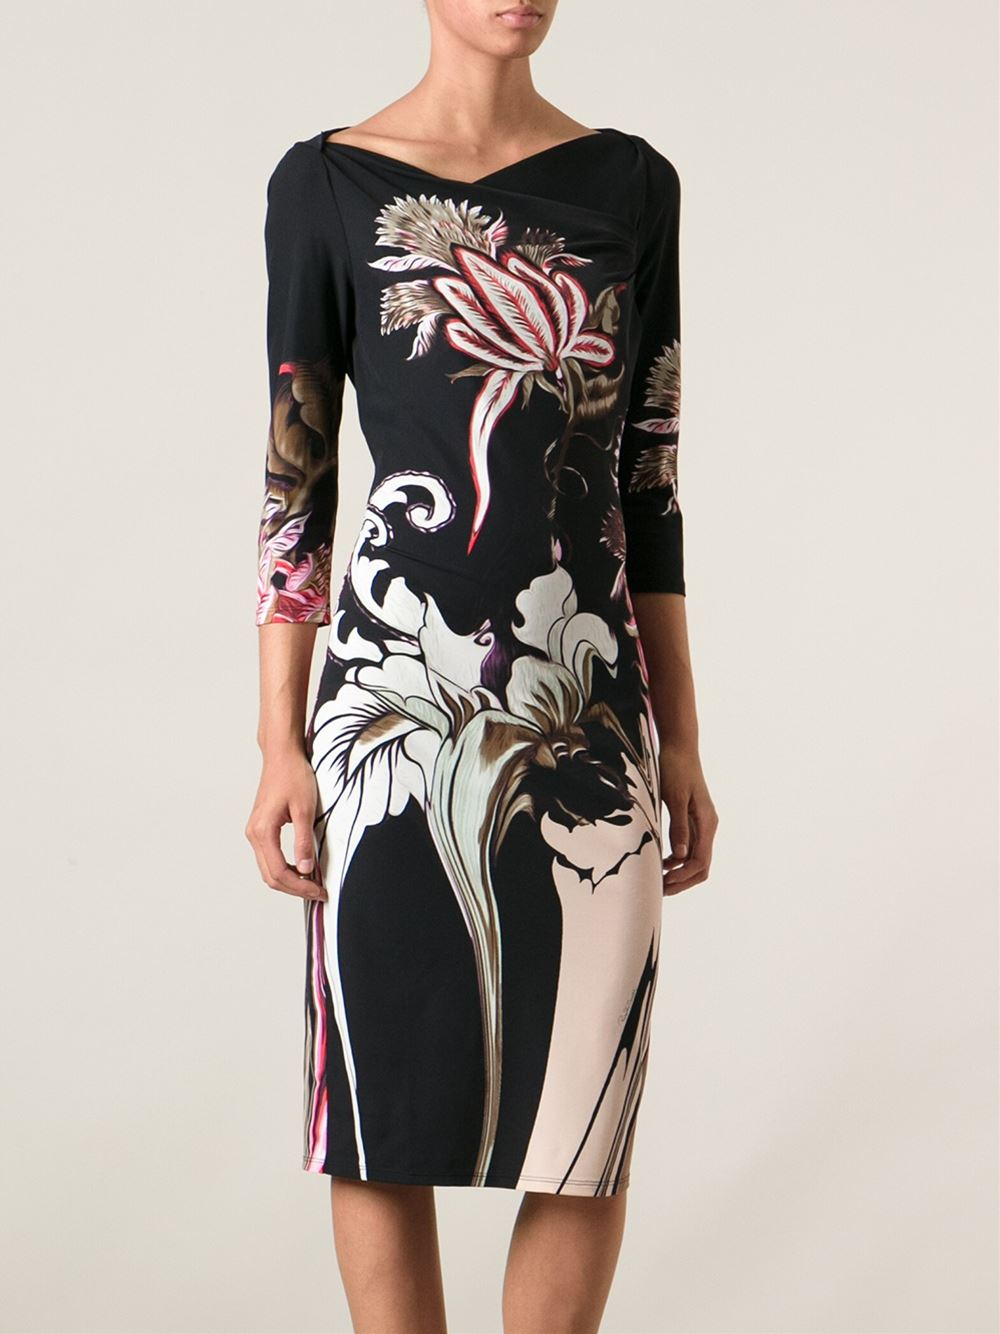 Discount Footlocker Pictures Store Cheap Price Just Cavalli floral print dress Visit Cheap Price Buy Cheap Visit New Amazon Footaction ItHf416